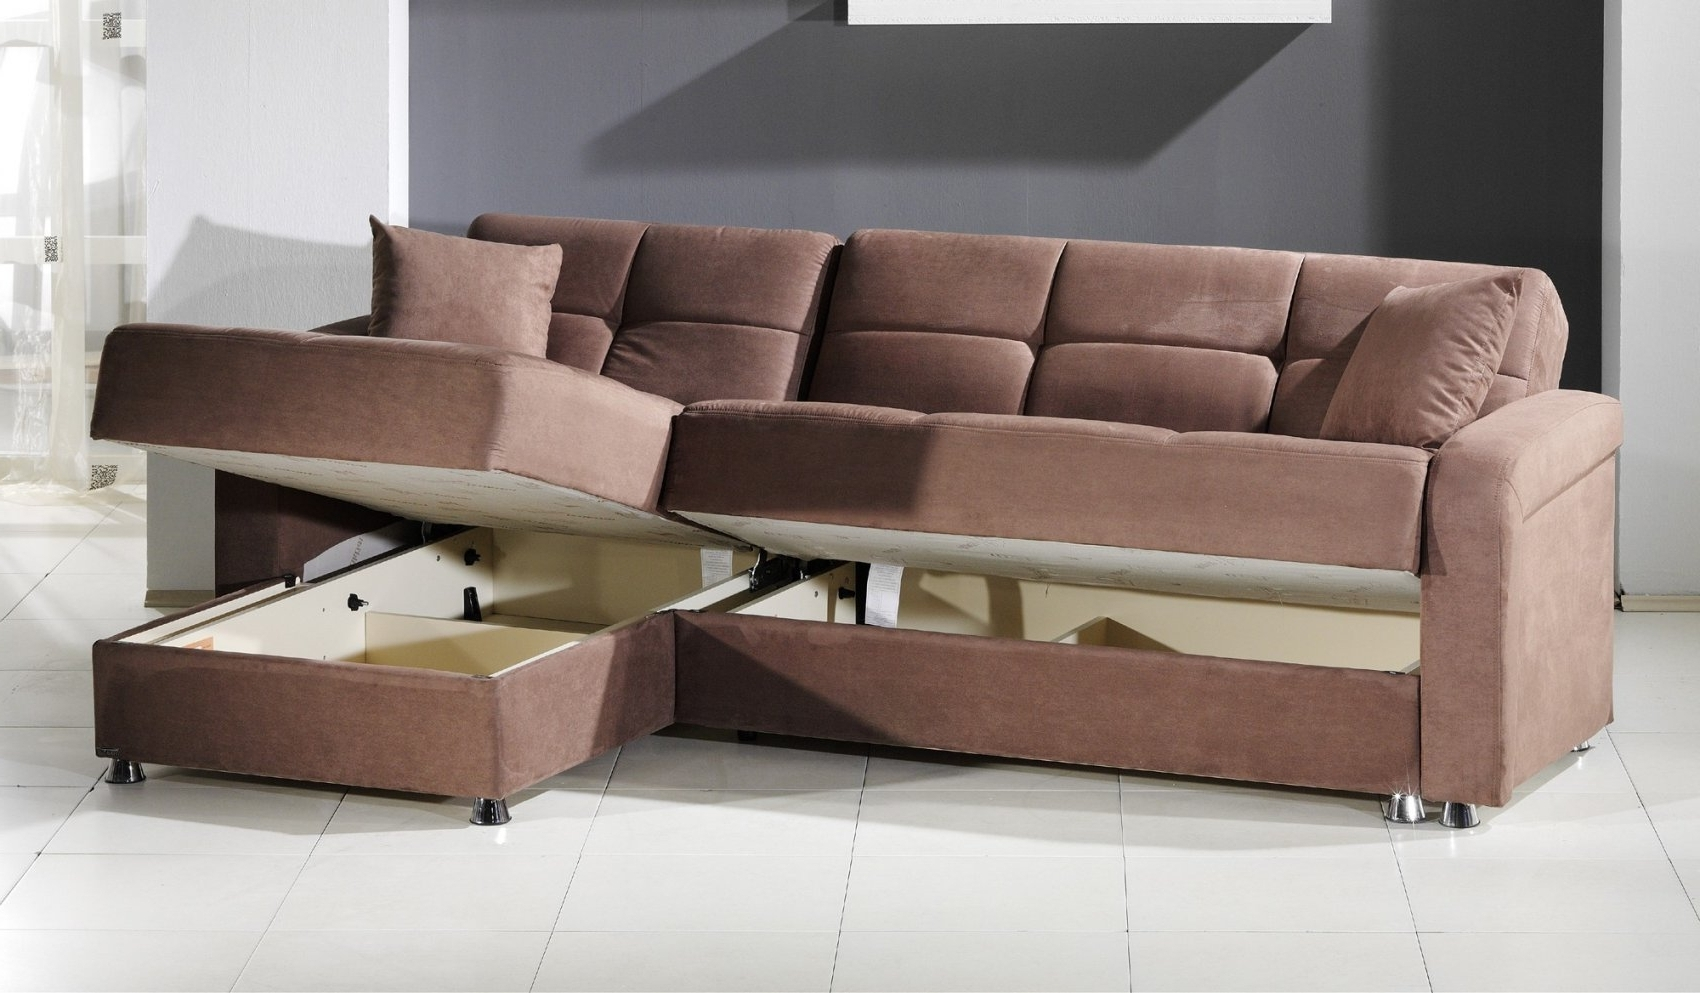 Brown Leather Sectional Sleeper Sofa With Chaise Lounge And With Regarding Most Recently Released Sleeper Sofas With Chaise And Storage (View 4 of 15)